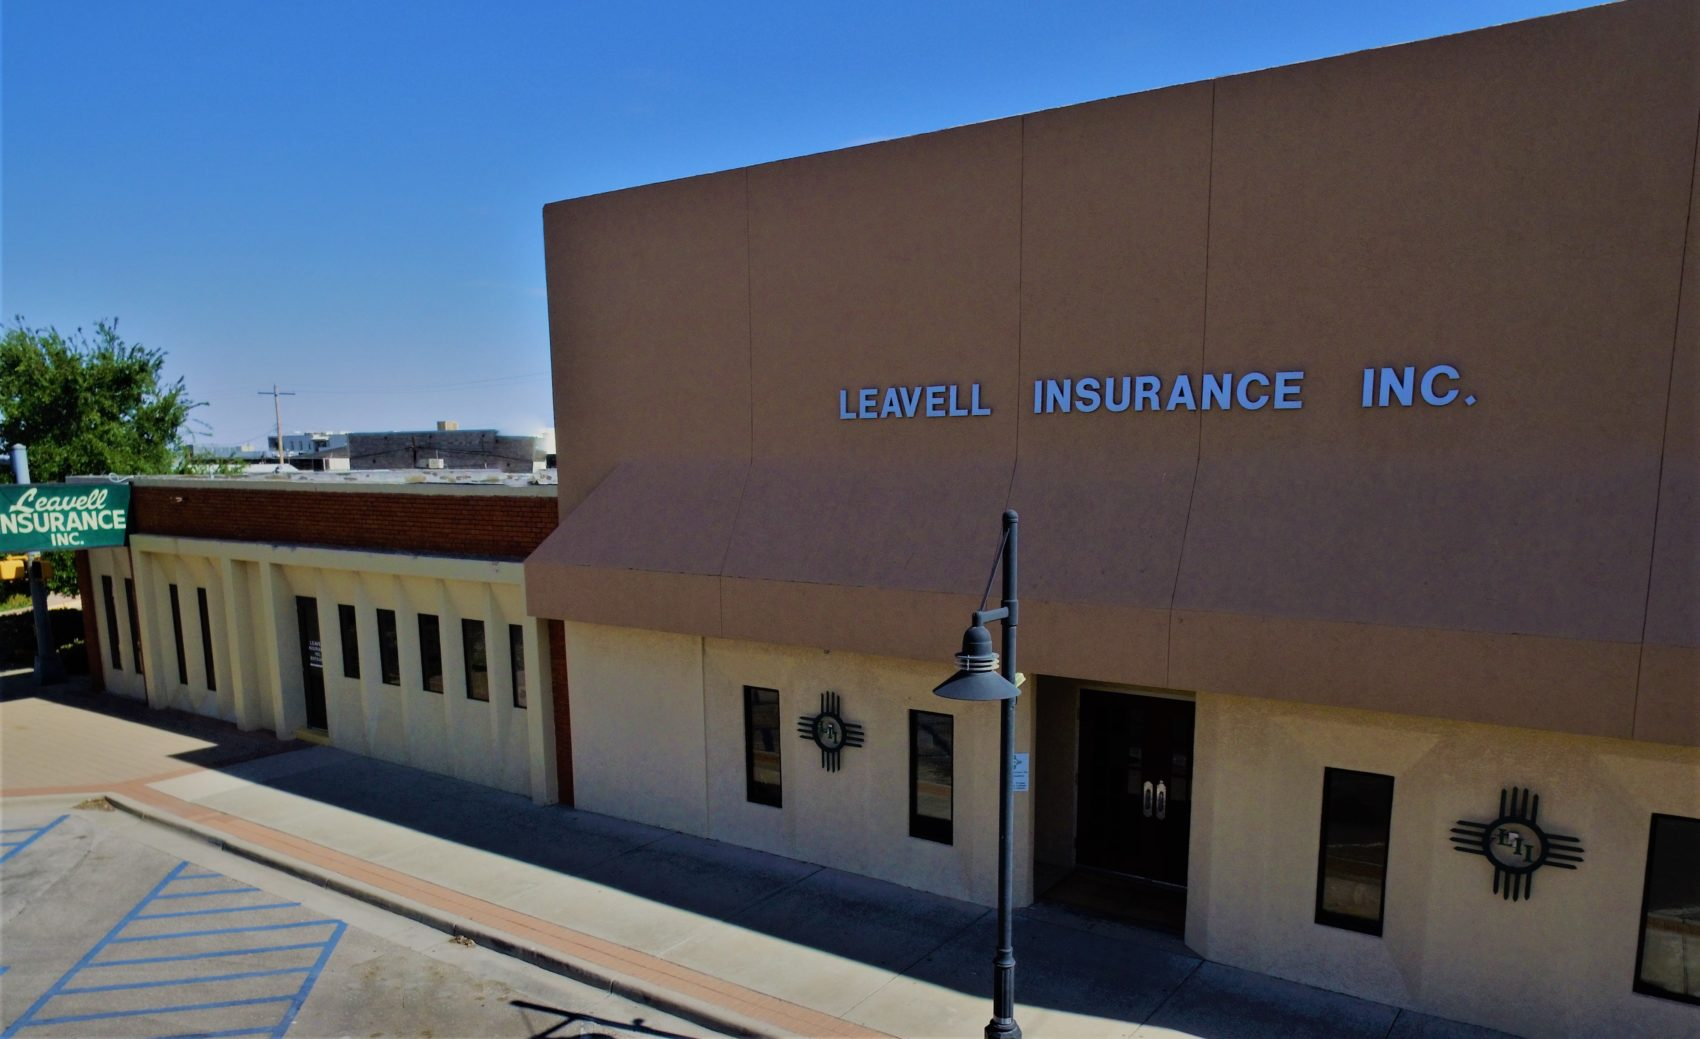 Leavell Insurance Inc.